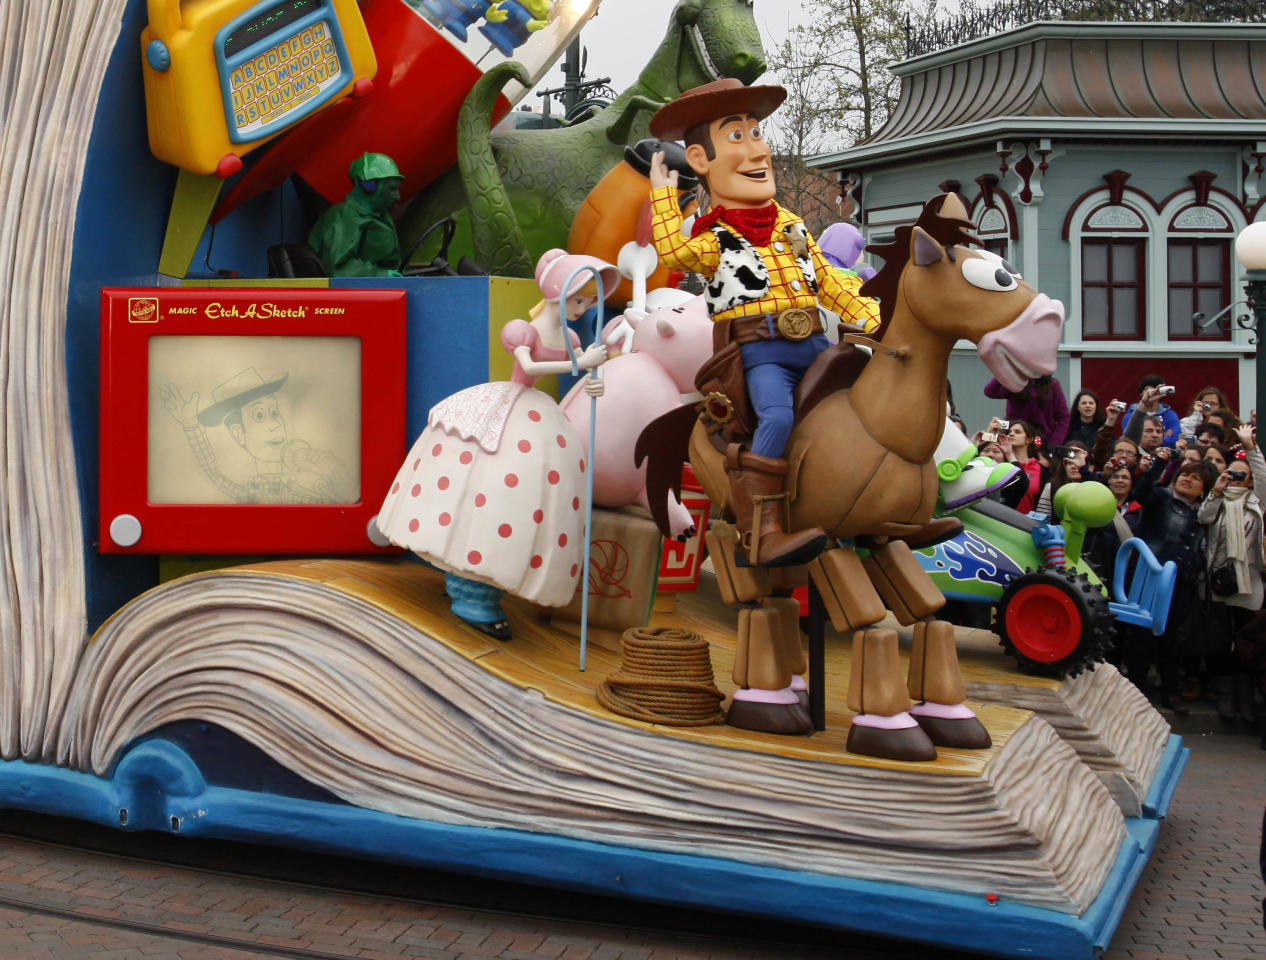 Characters from Euro Disneyland perform in Disneylands theme park in Marne-la-Vallee, east of Paris, Saturday March 31, 2012. This will mark the 20th year since Disneyland opened in Paris in 1992.(AP Photo/Michel Spingler)